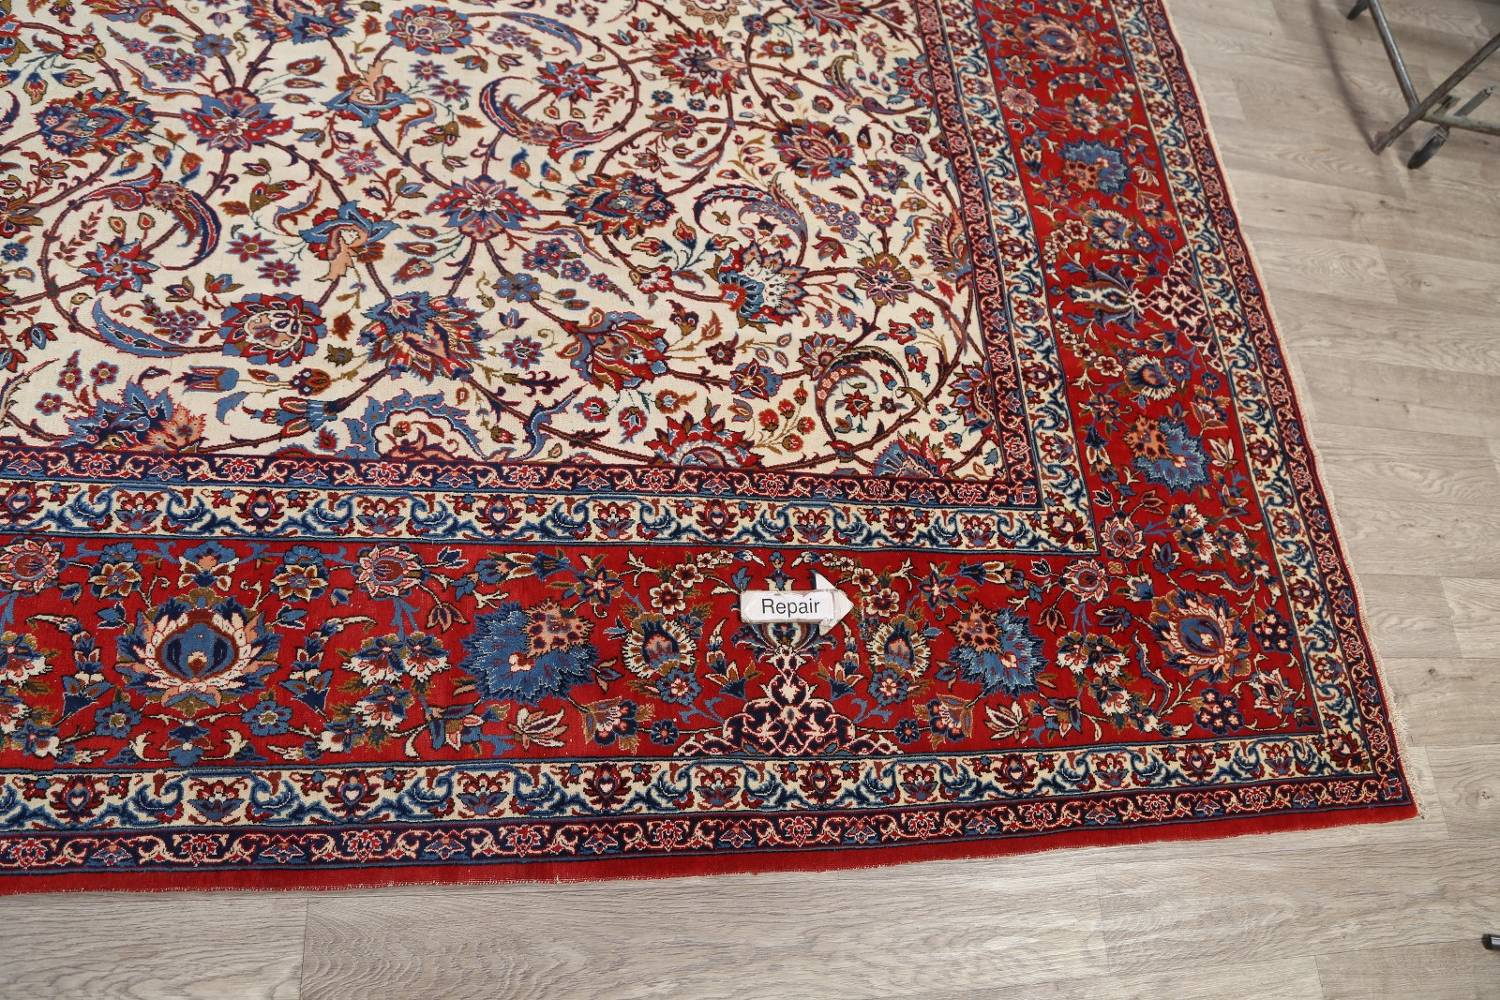 Antique Floral 10x16 Isfahan Persian Area Rug image 23